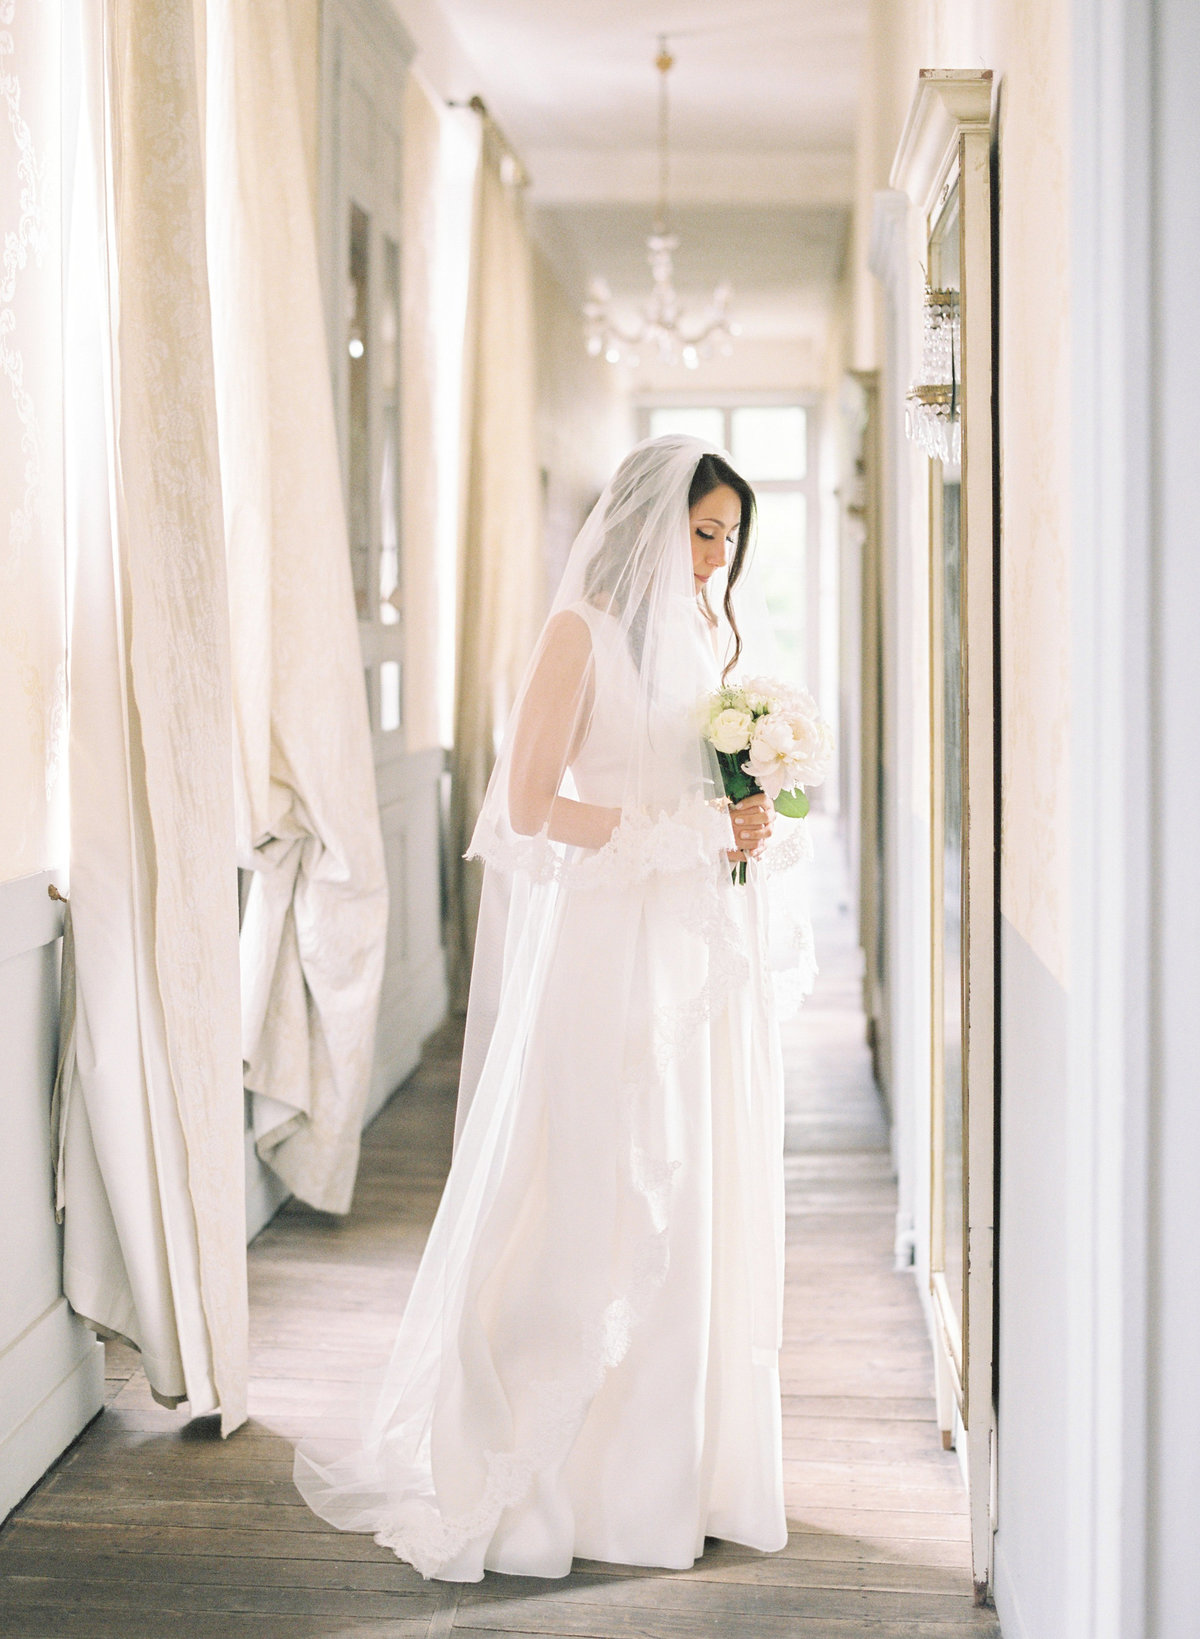 Intimate french champagne chateau wedding amelia soegijono0035